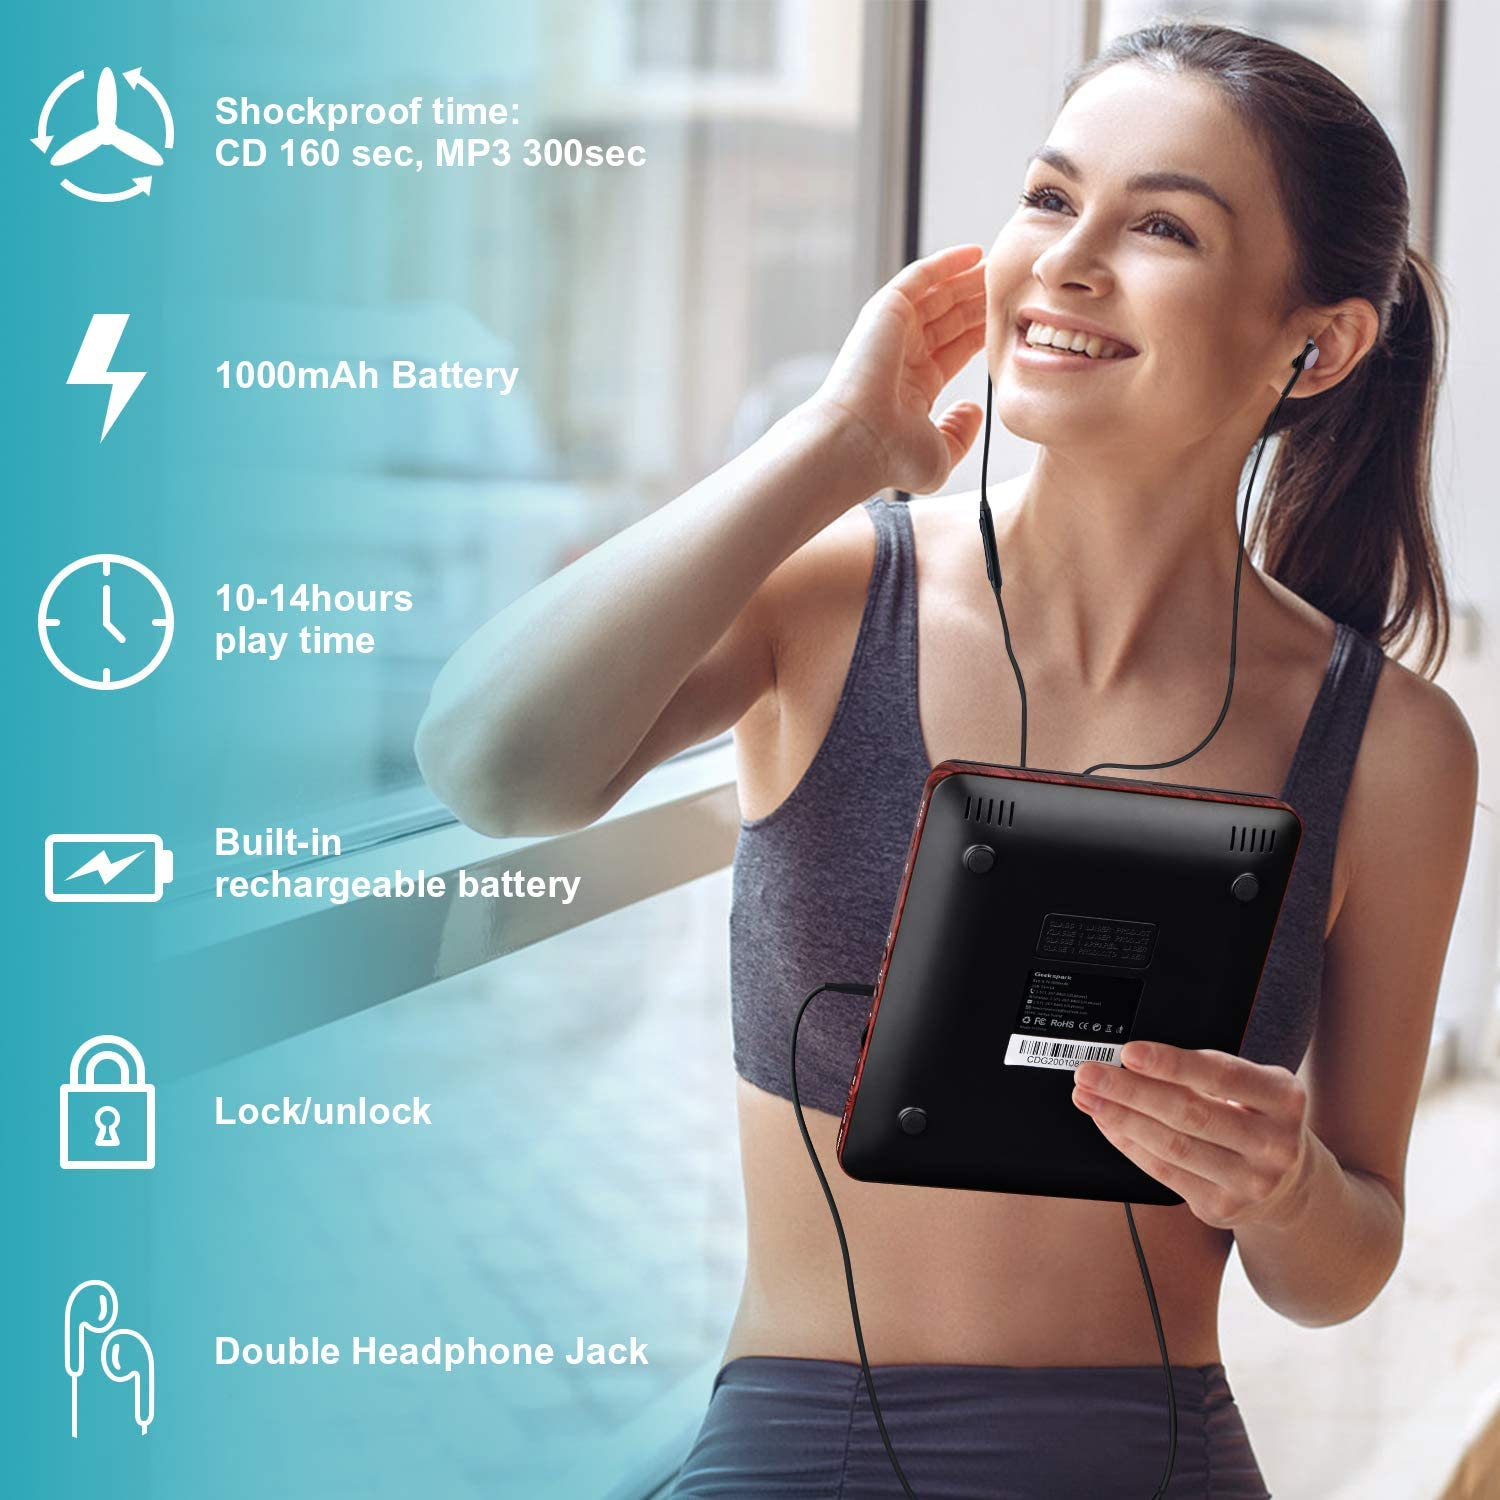 Anti-Skip//Shockproof Function Music Disc Walkman Player. Portable CD Player with Earphones USB Charger LCD Display Digihero Upgrade Personal Portable CD Player With 1000mAh Battery